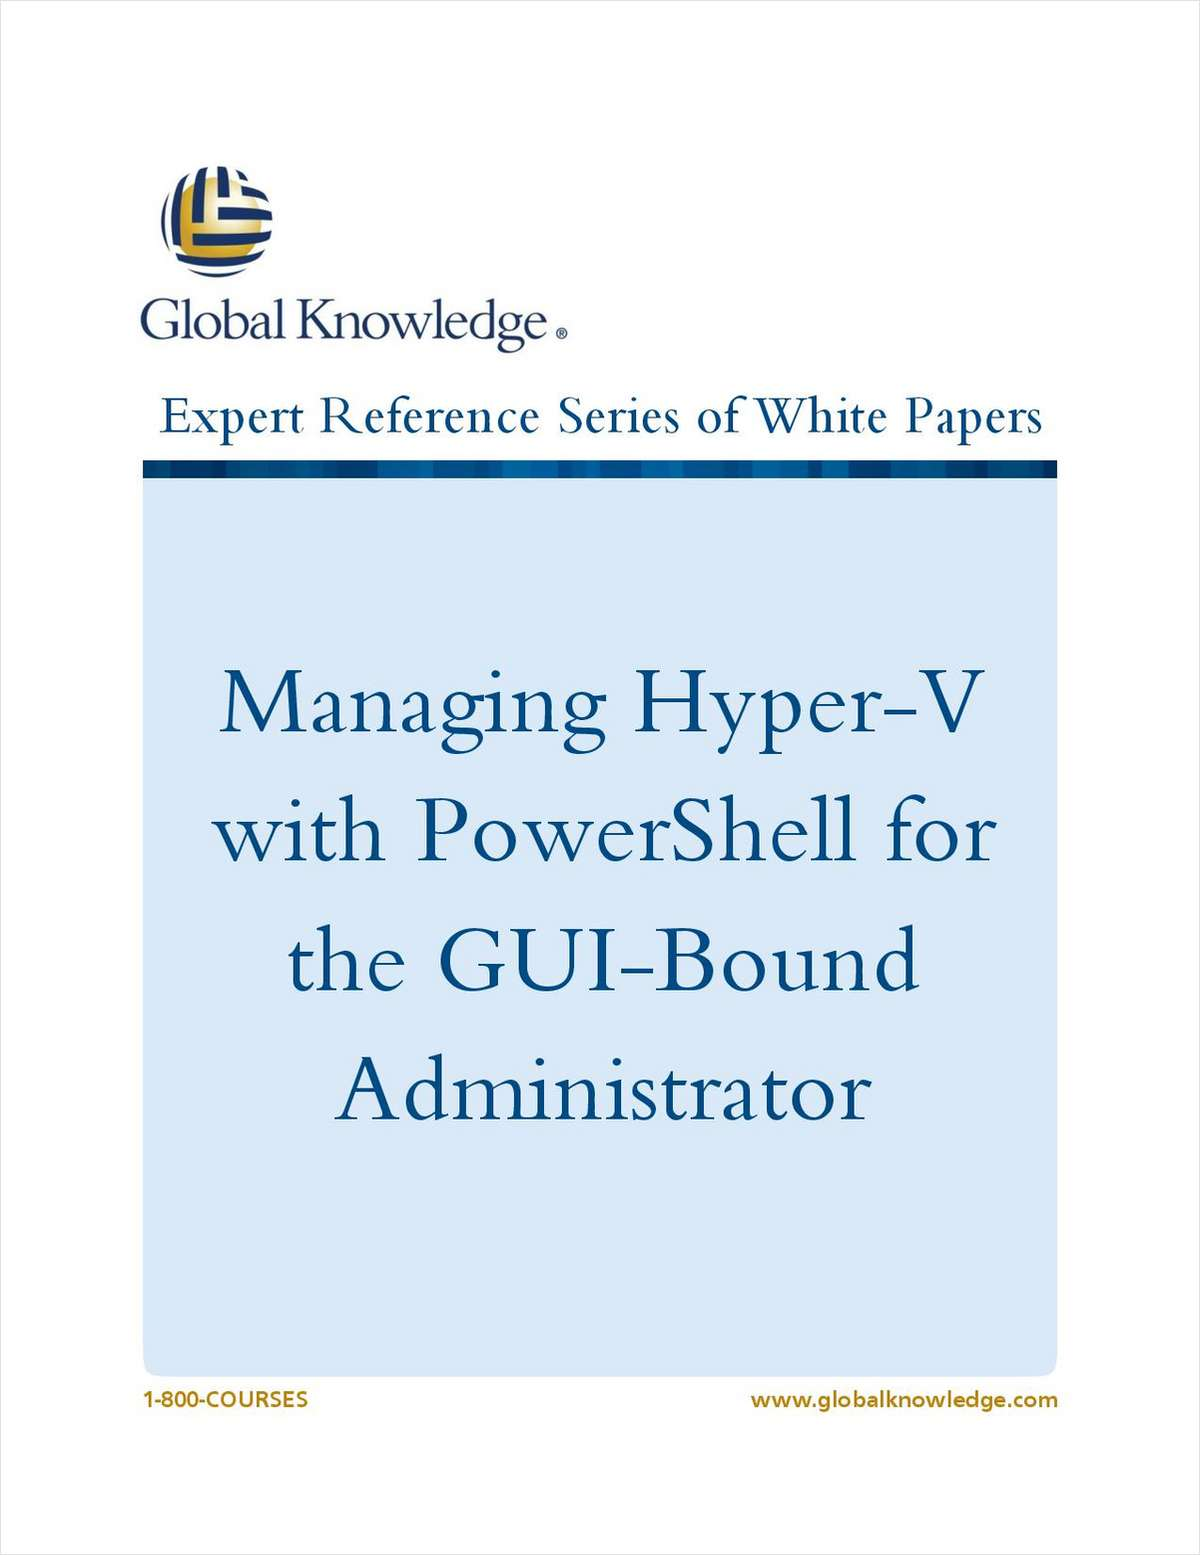 Managing Hyper-V with PowerShell for the GUI-Bound Administrator